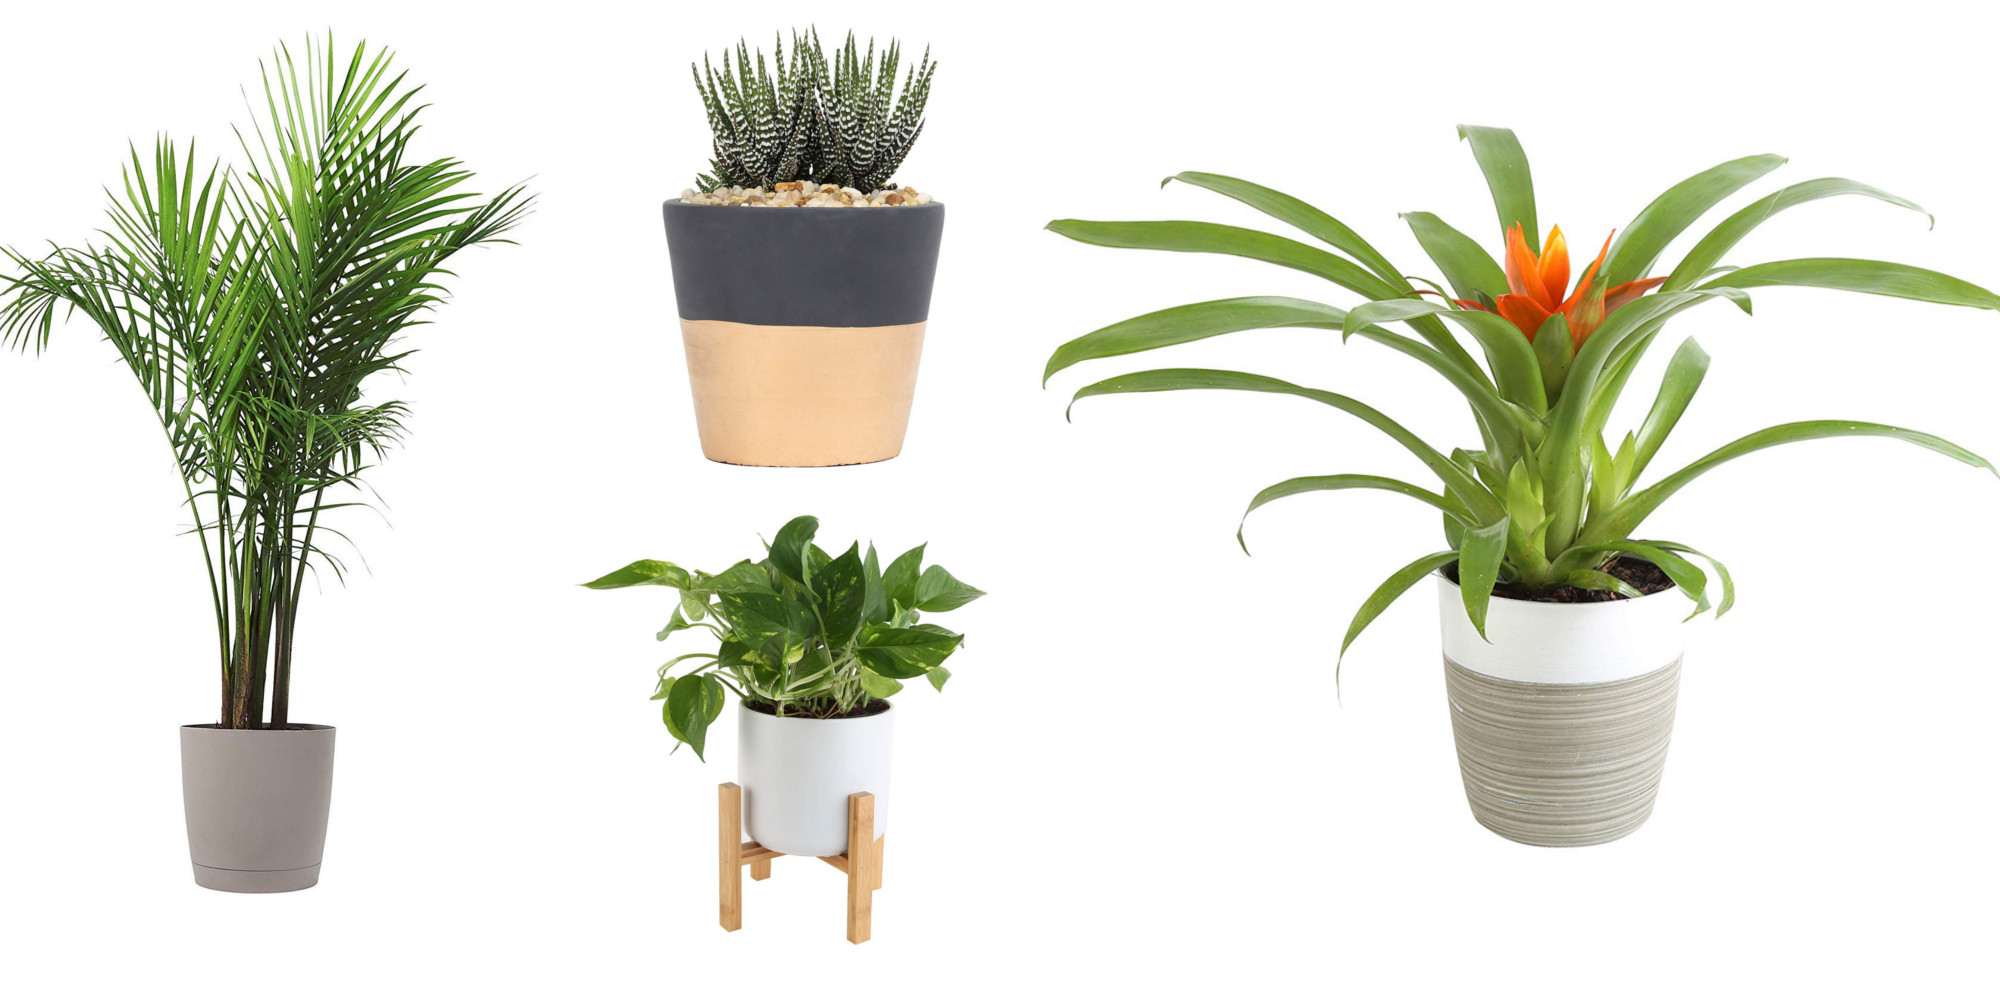 Amazon 1-day Costa Farms Plant Sale from $16: succulents, palms, bamboo, more (25% off)